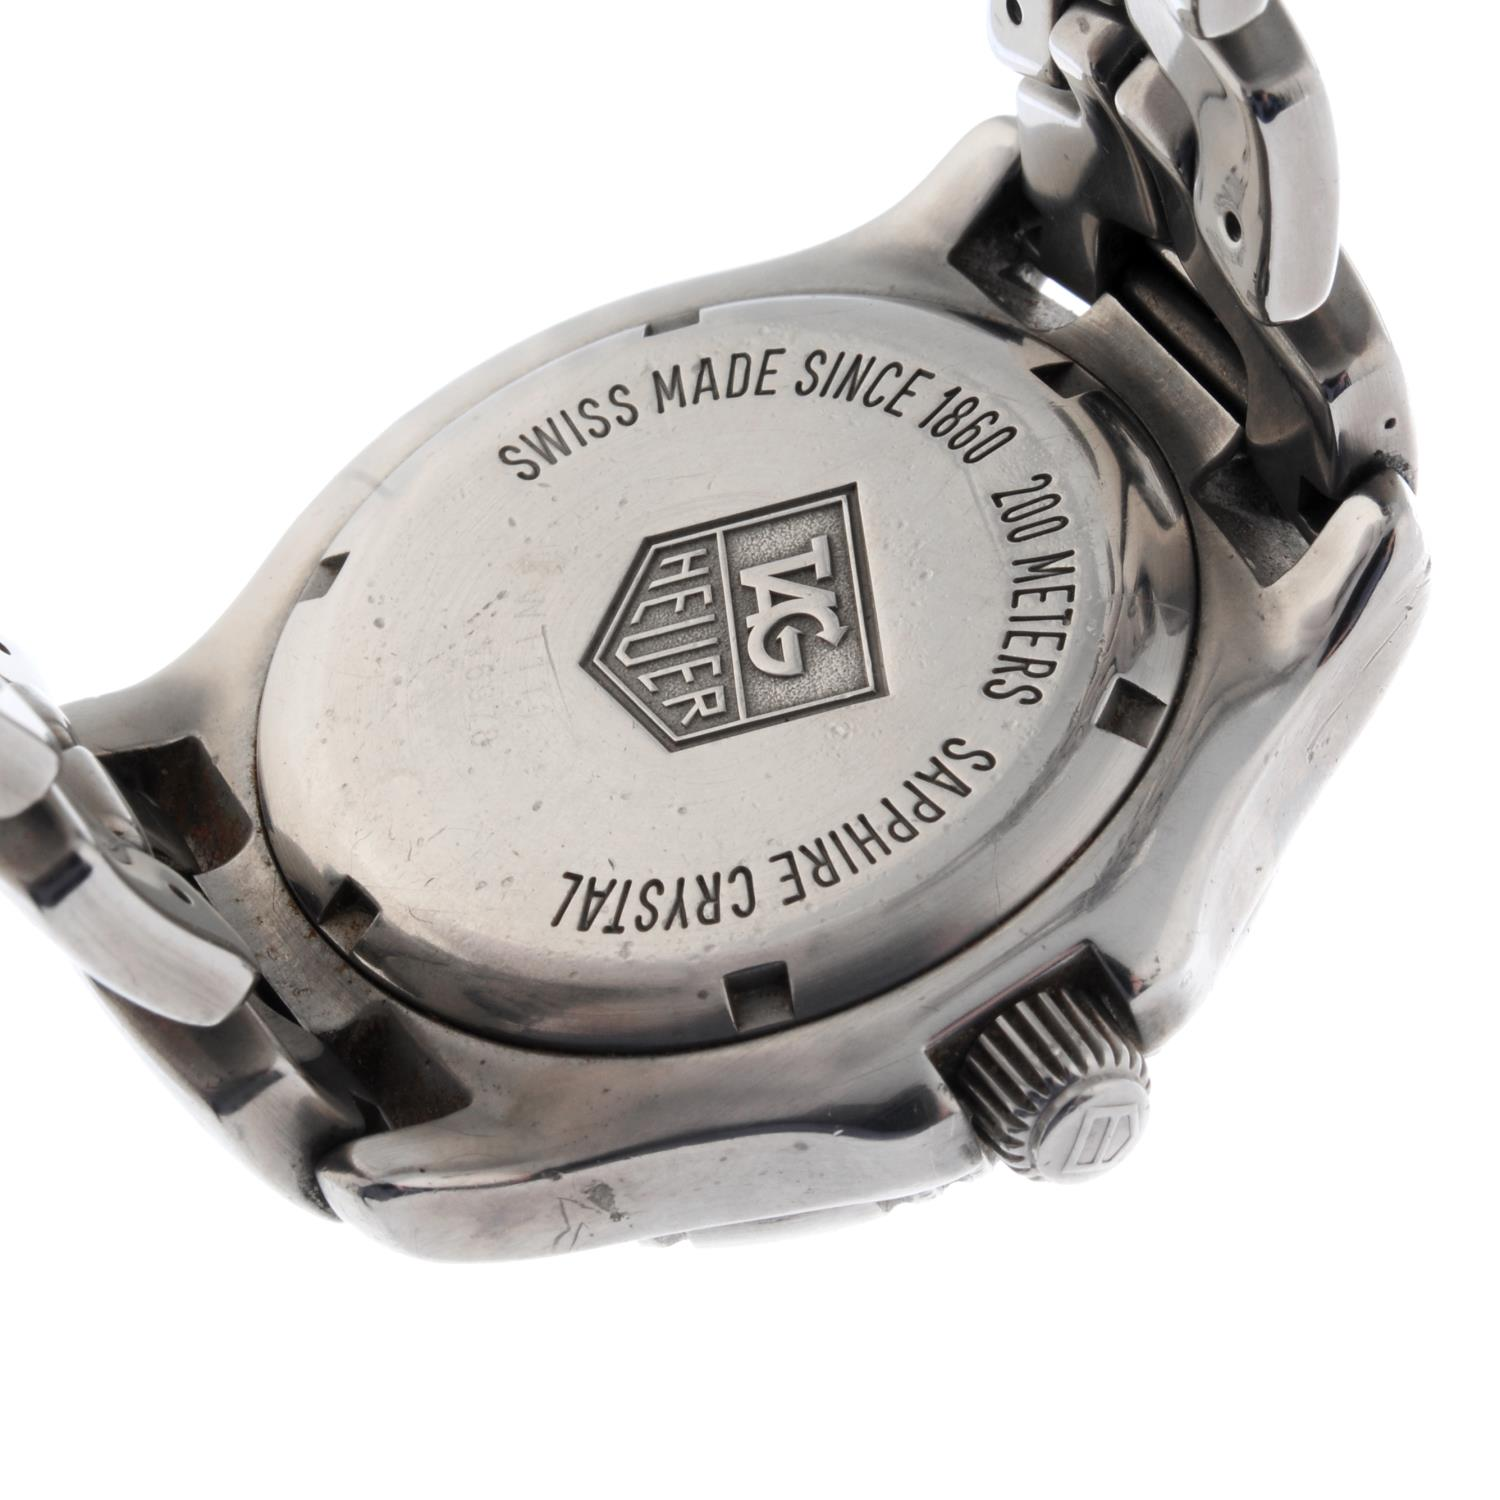 TAG HEUER - a Link bracelet watch. - Image 4 of 4